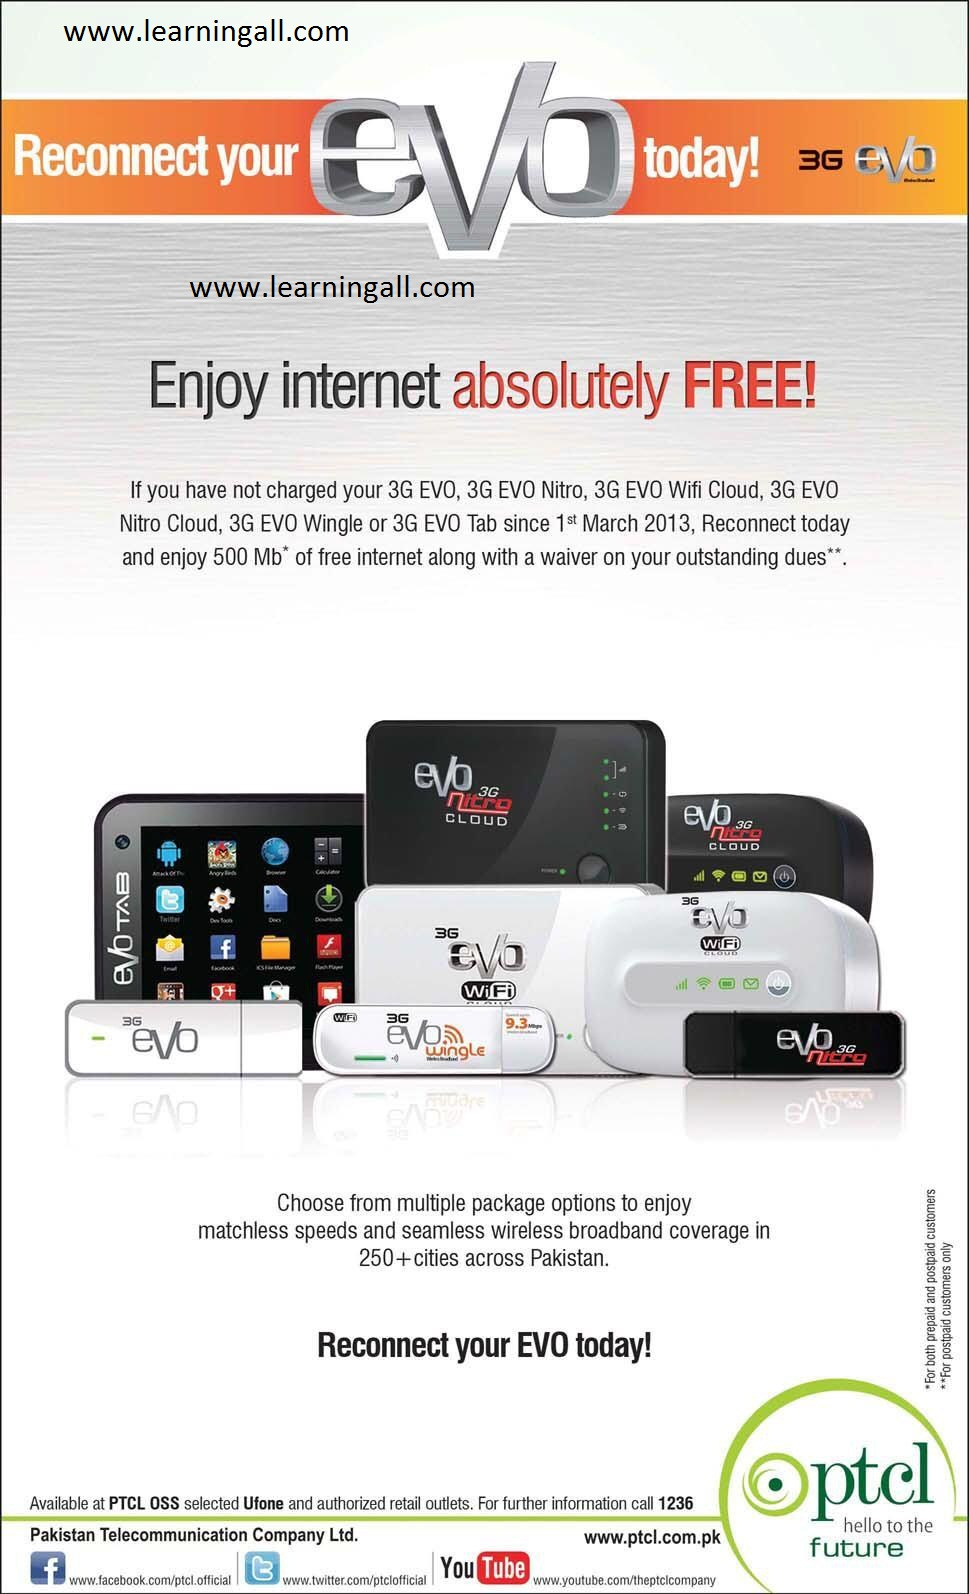 PTCL Evo Device Reconnect offer